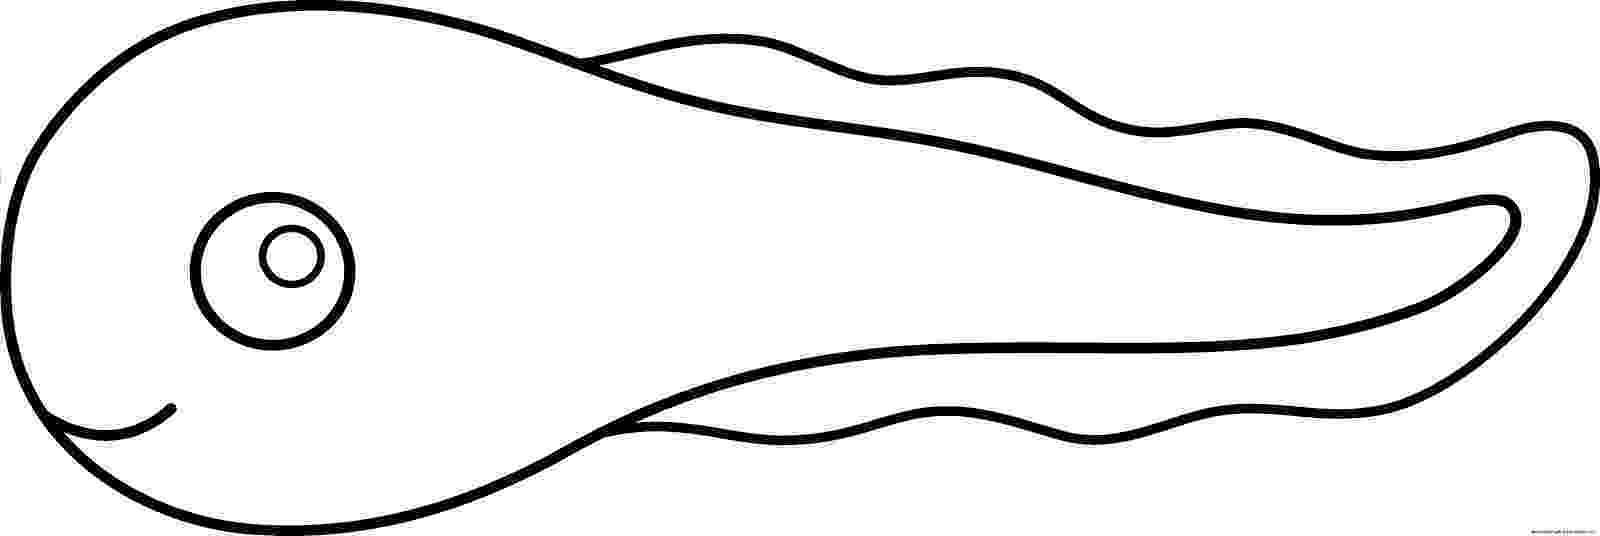 tadpole coloring page tadpole and froglet coloring page free printable coloring tadpole page